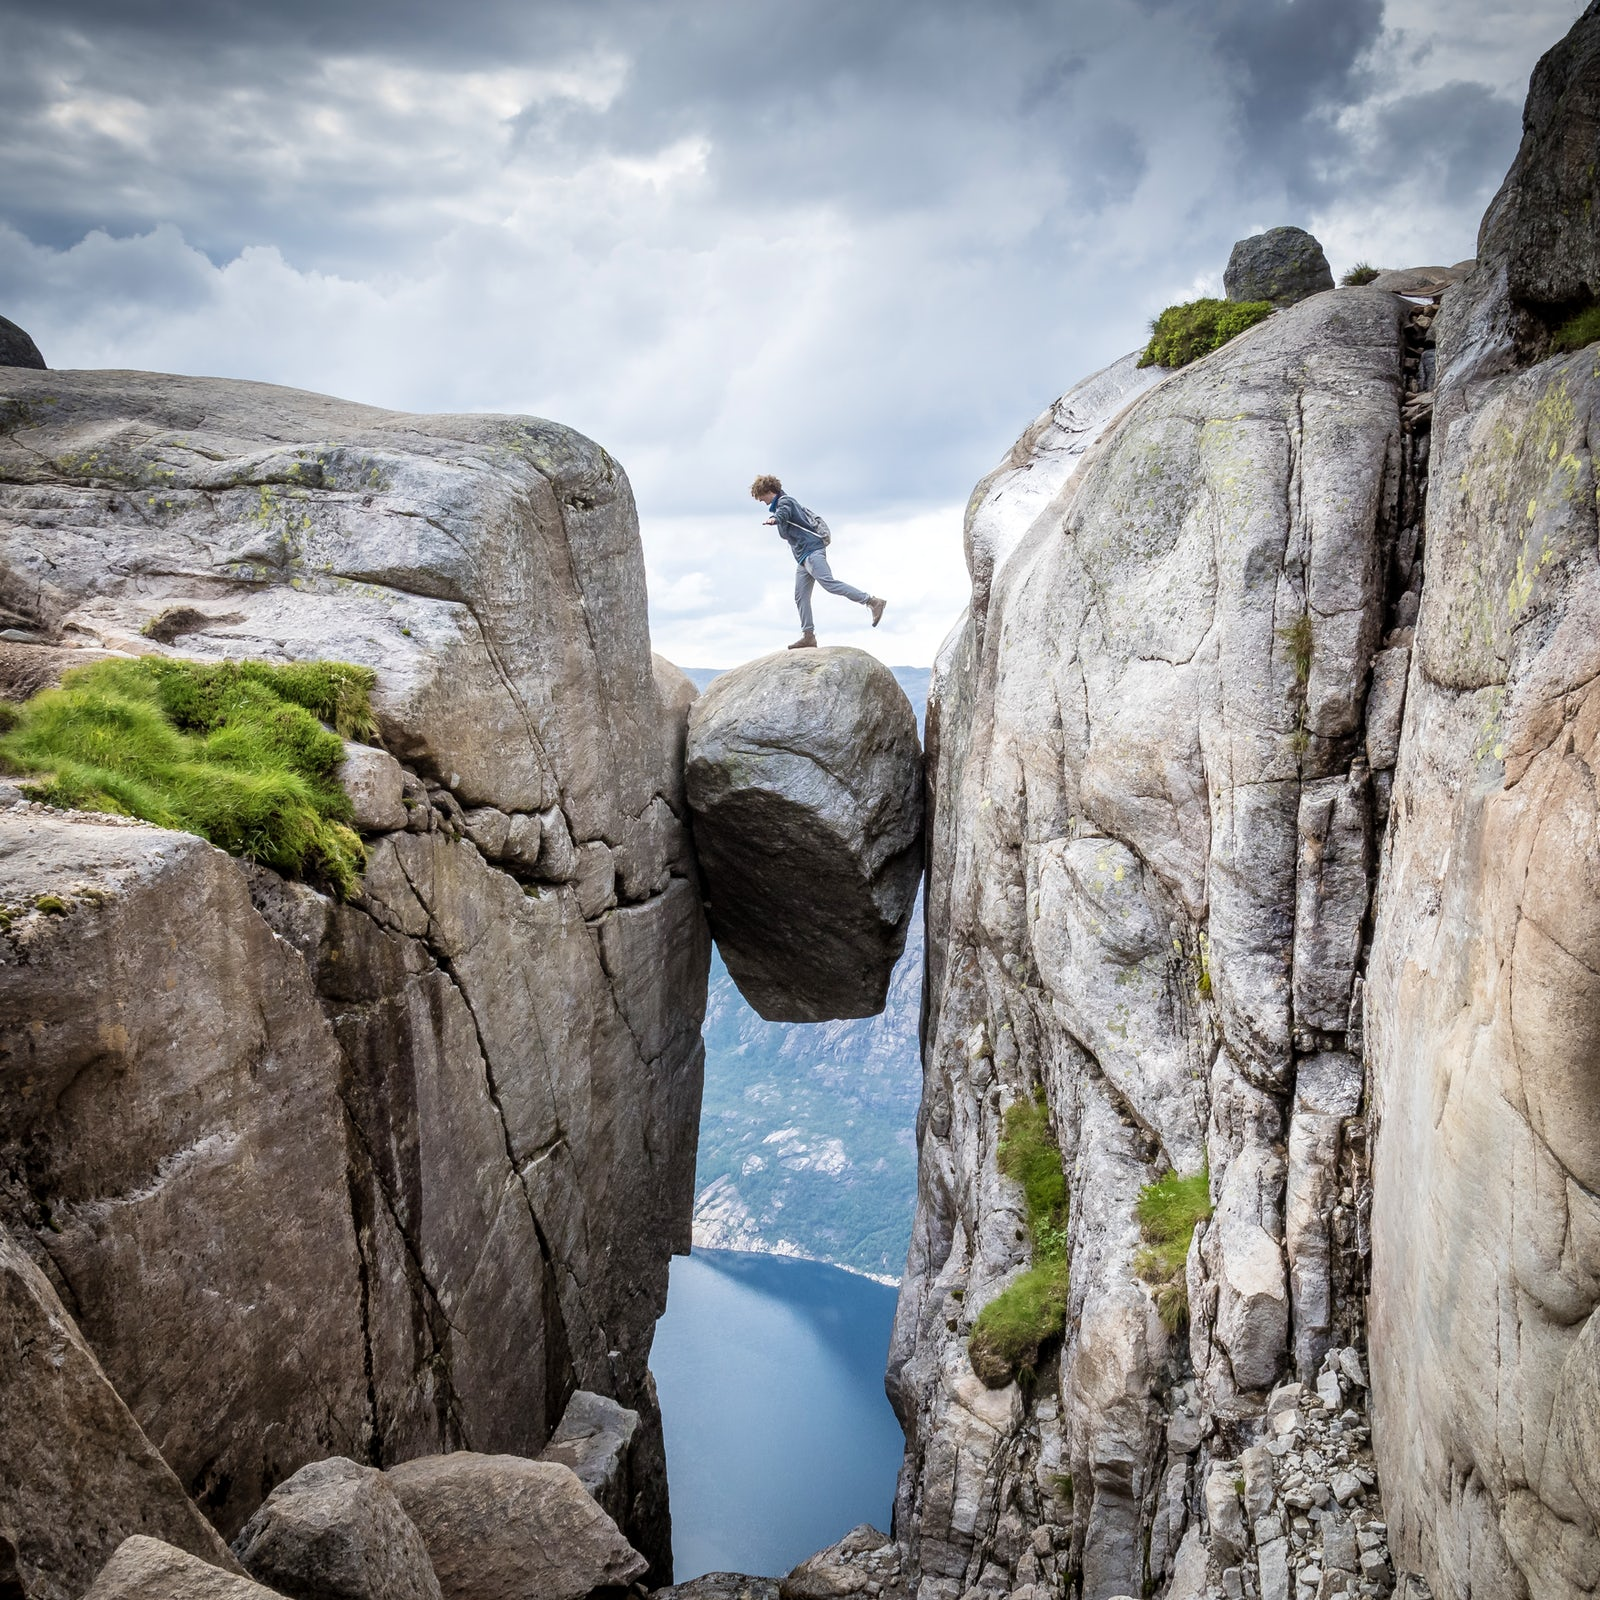 A brave person standing on the rock. Photo ©: dziambel